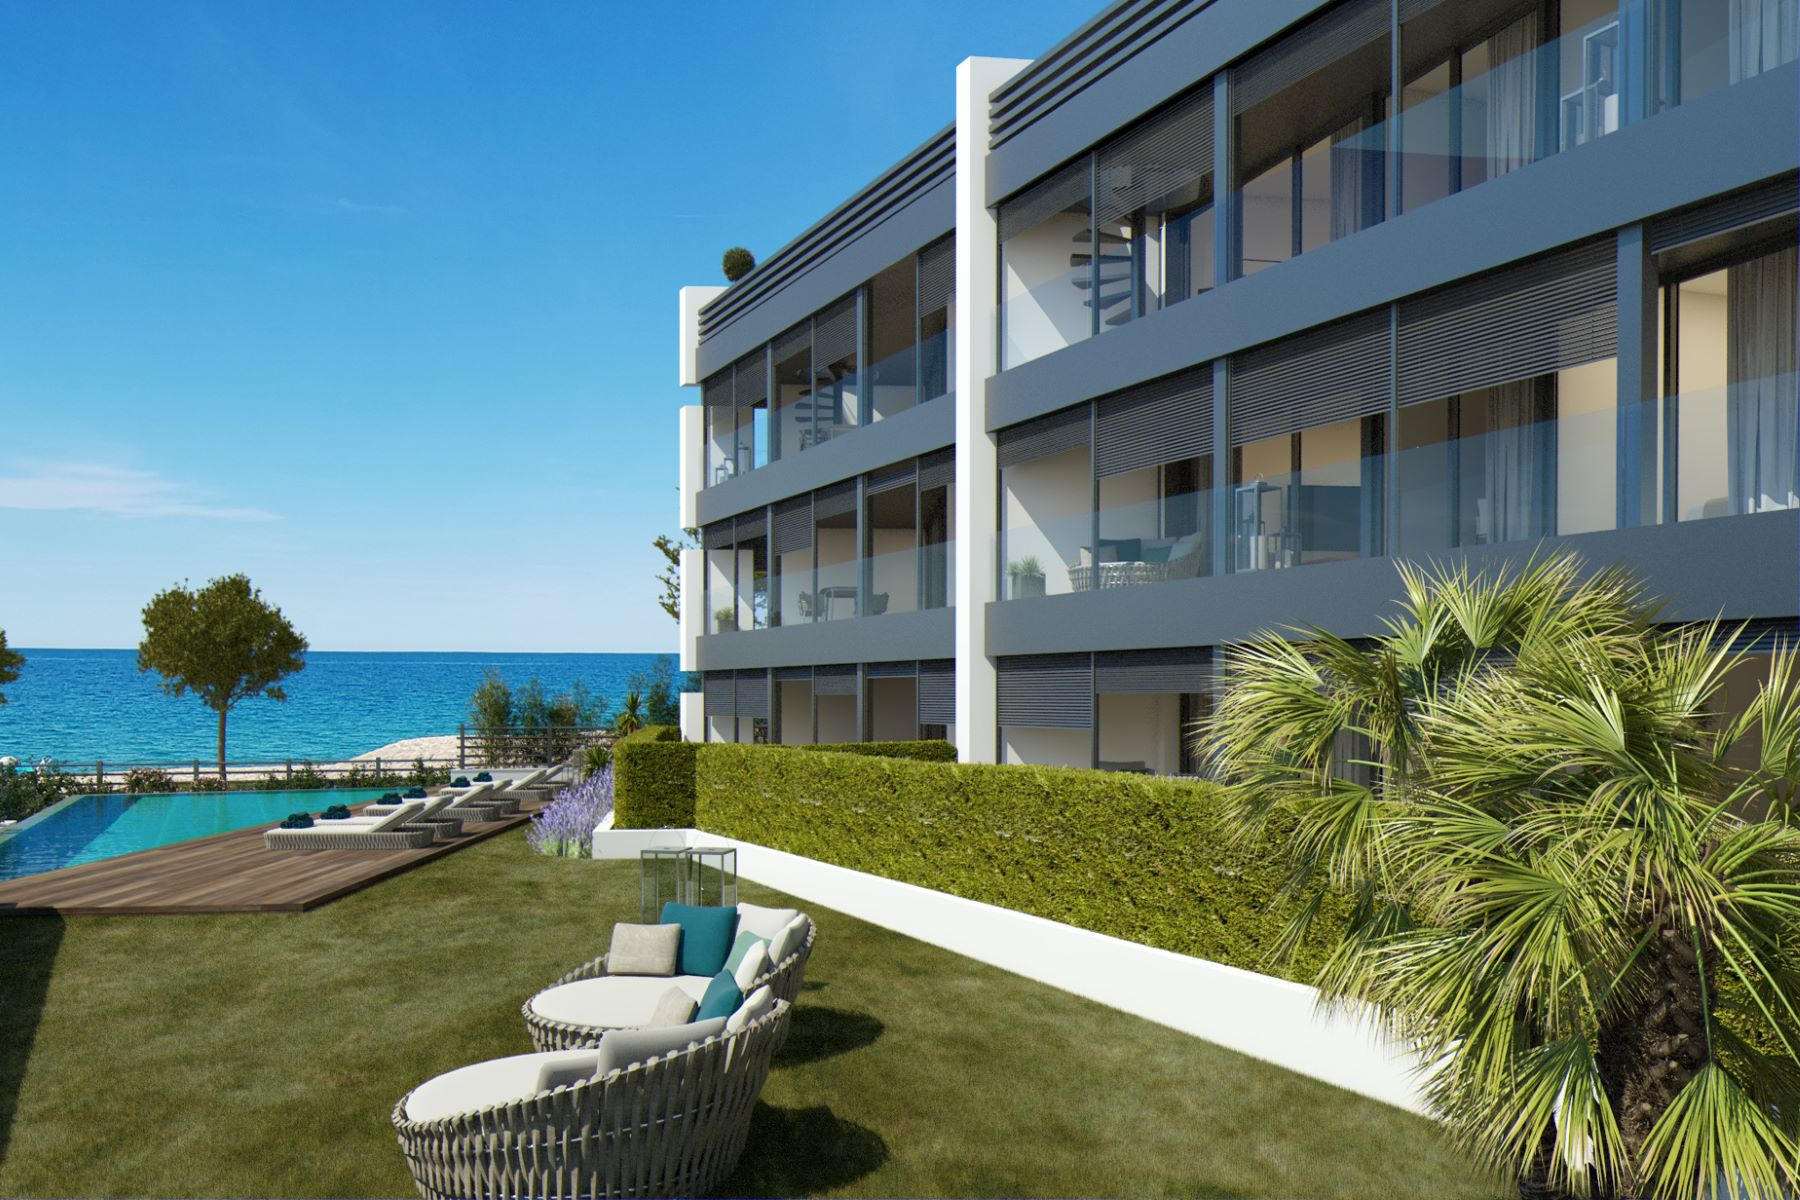 Apartment for Sale at Planta baja con jardín privado y vista al mar en nueva promoción exclusiva Playa De Aro, Costa Brava, 17250 Spain